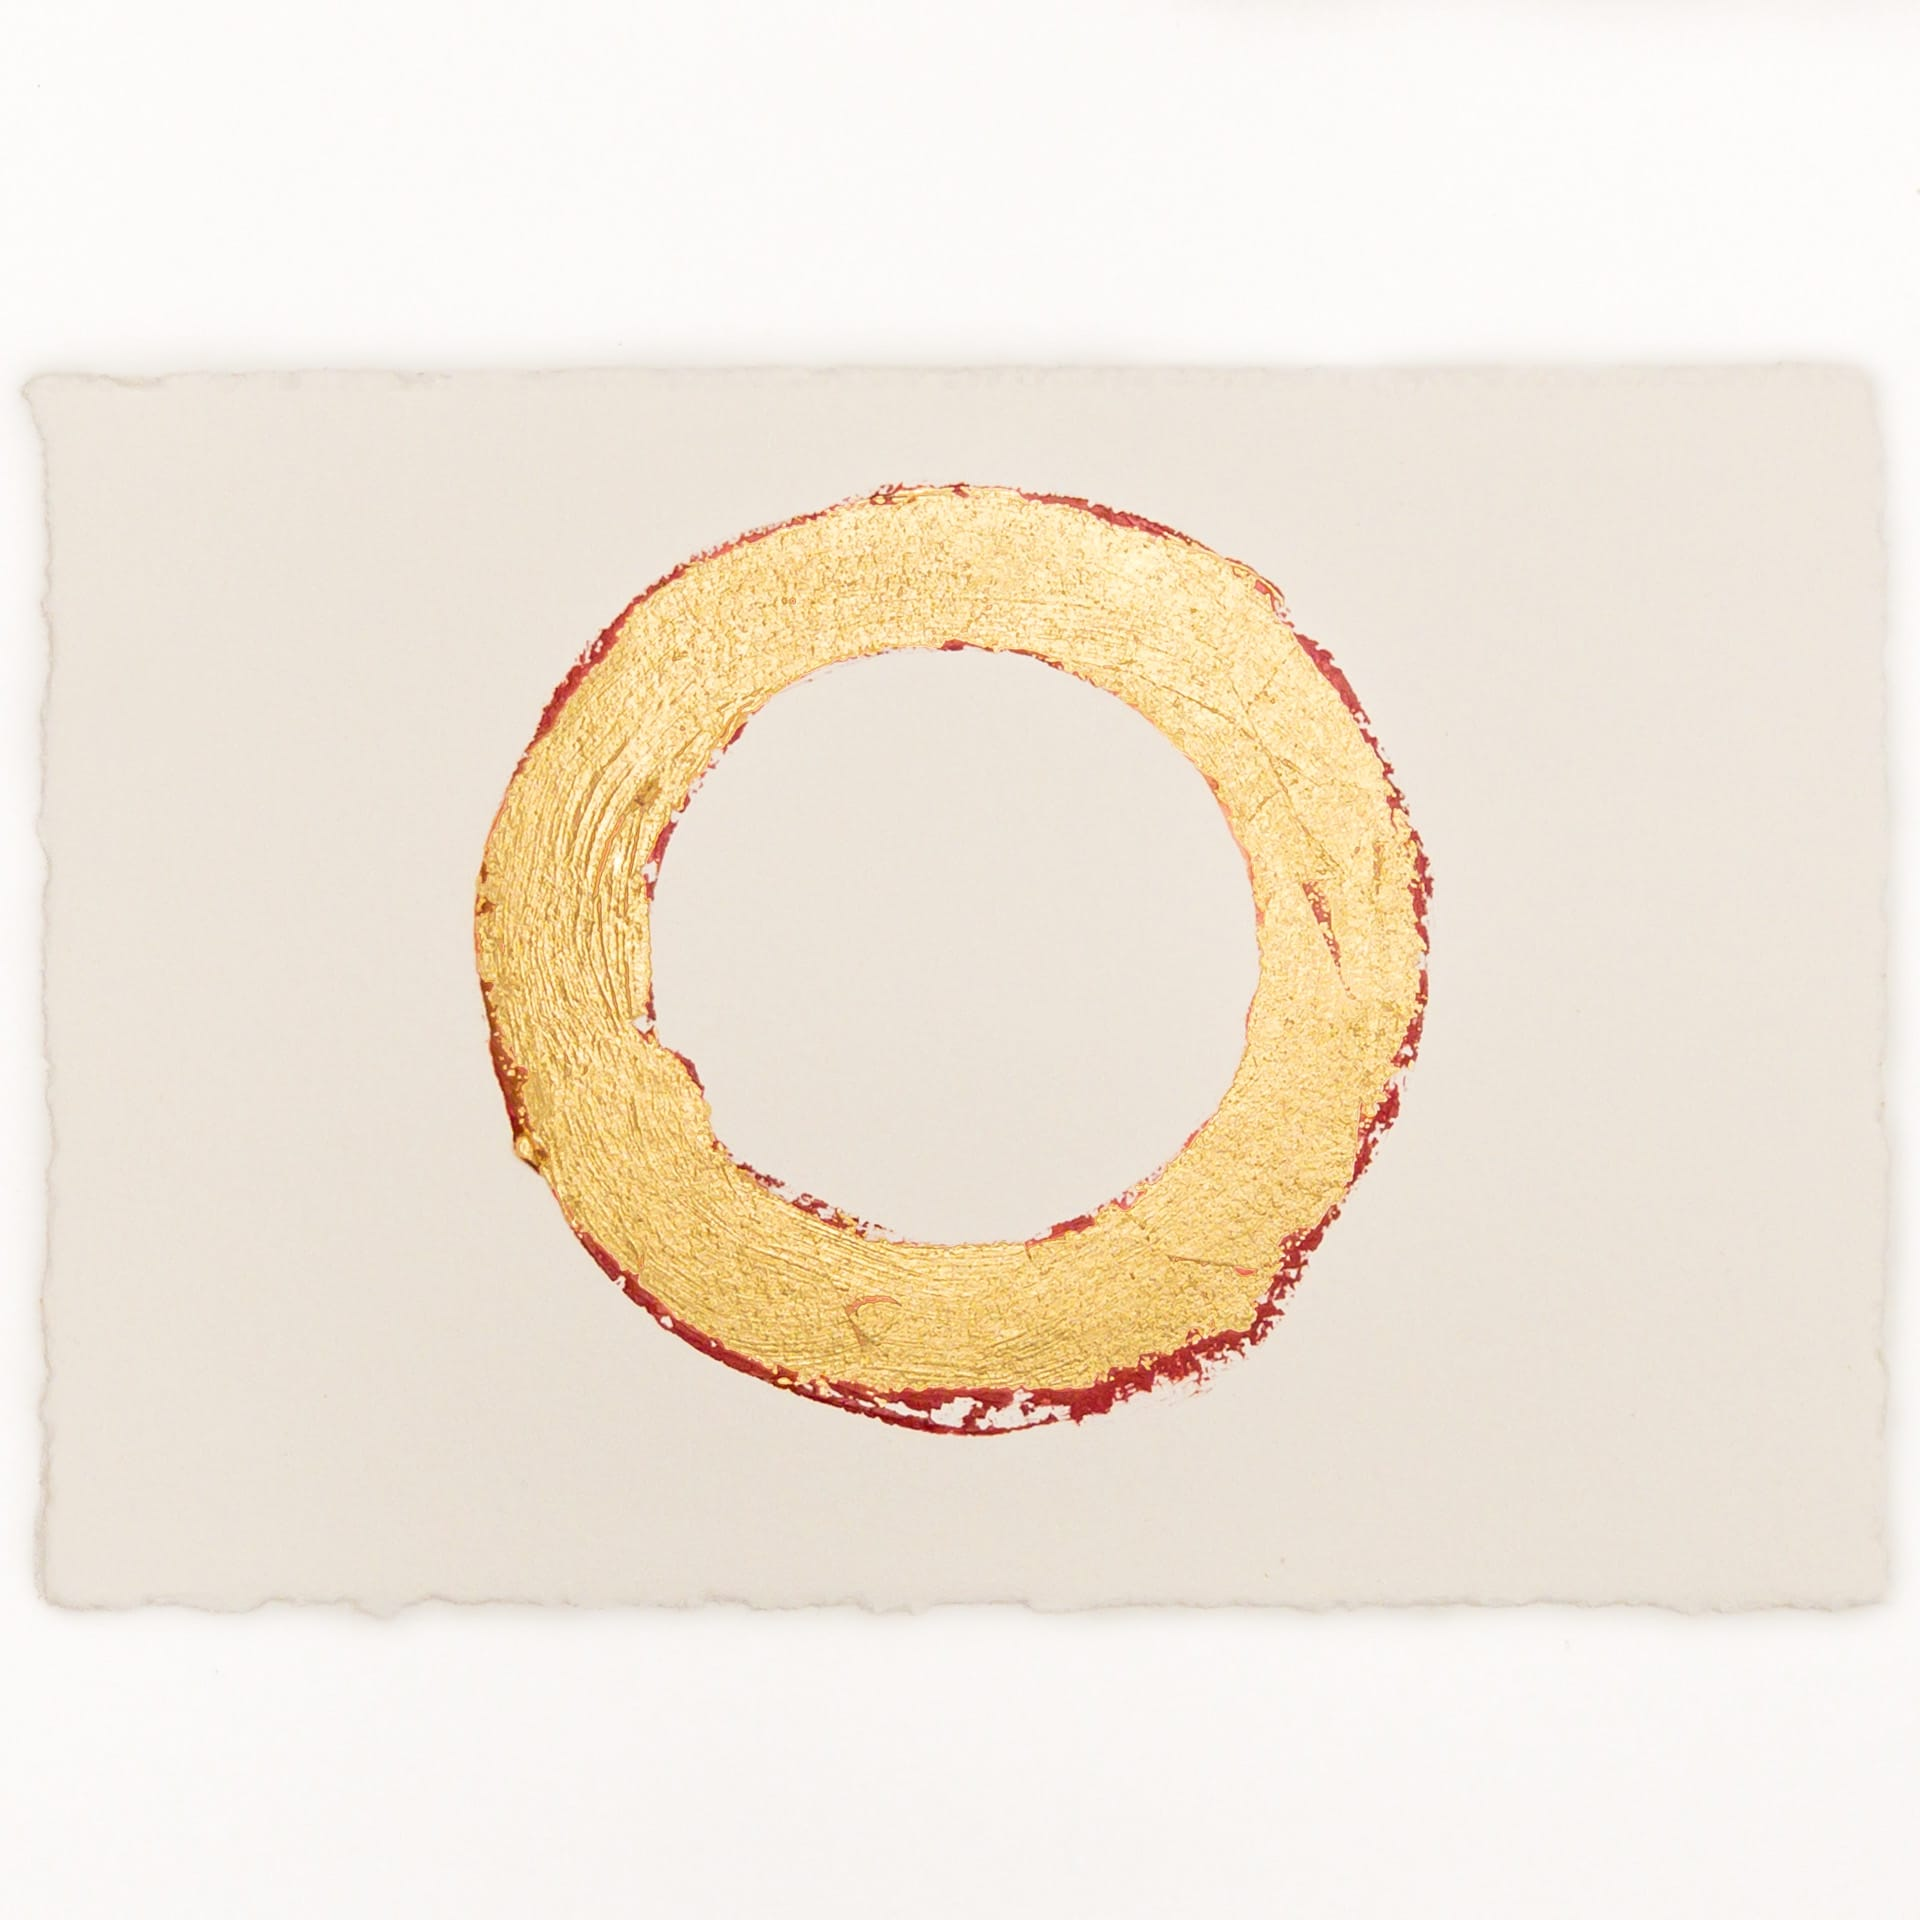 Circle 5x7 Gold over red 1 by Randall Stoltzfus